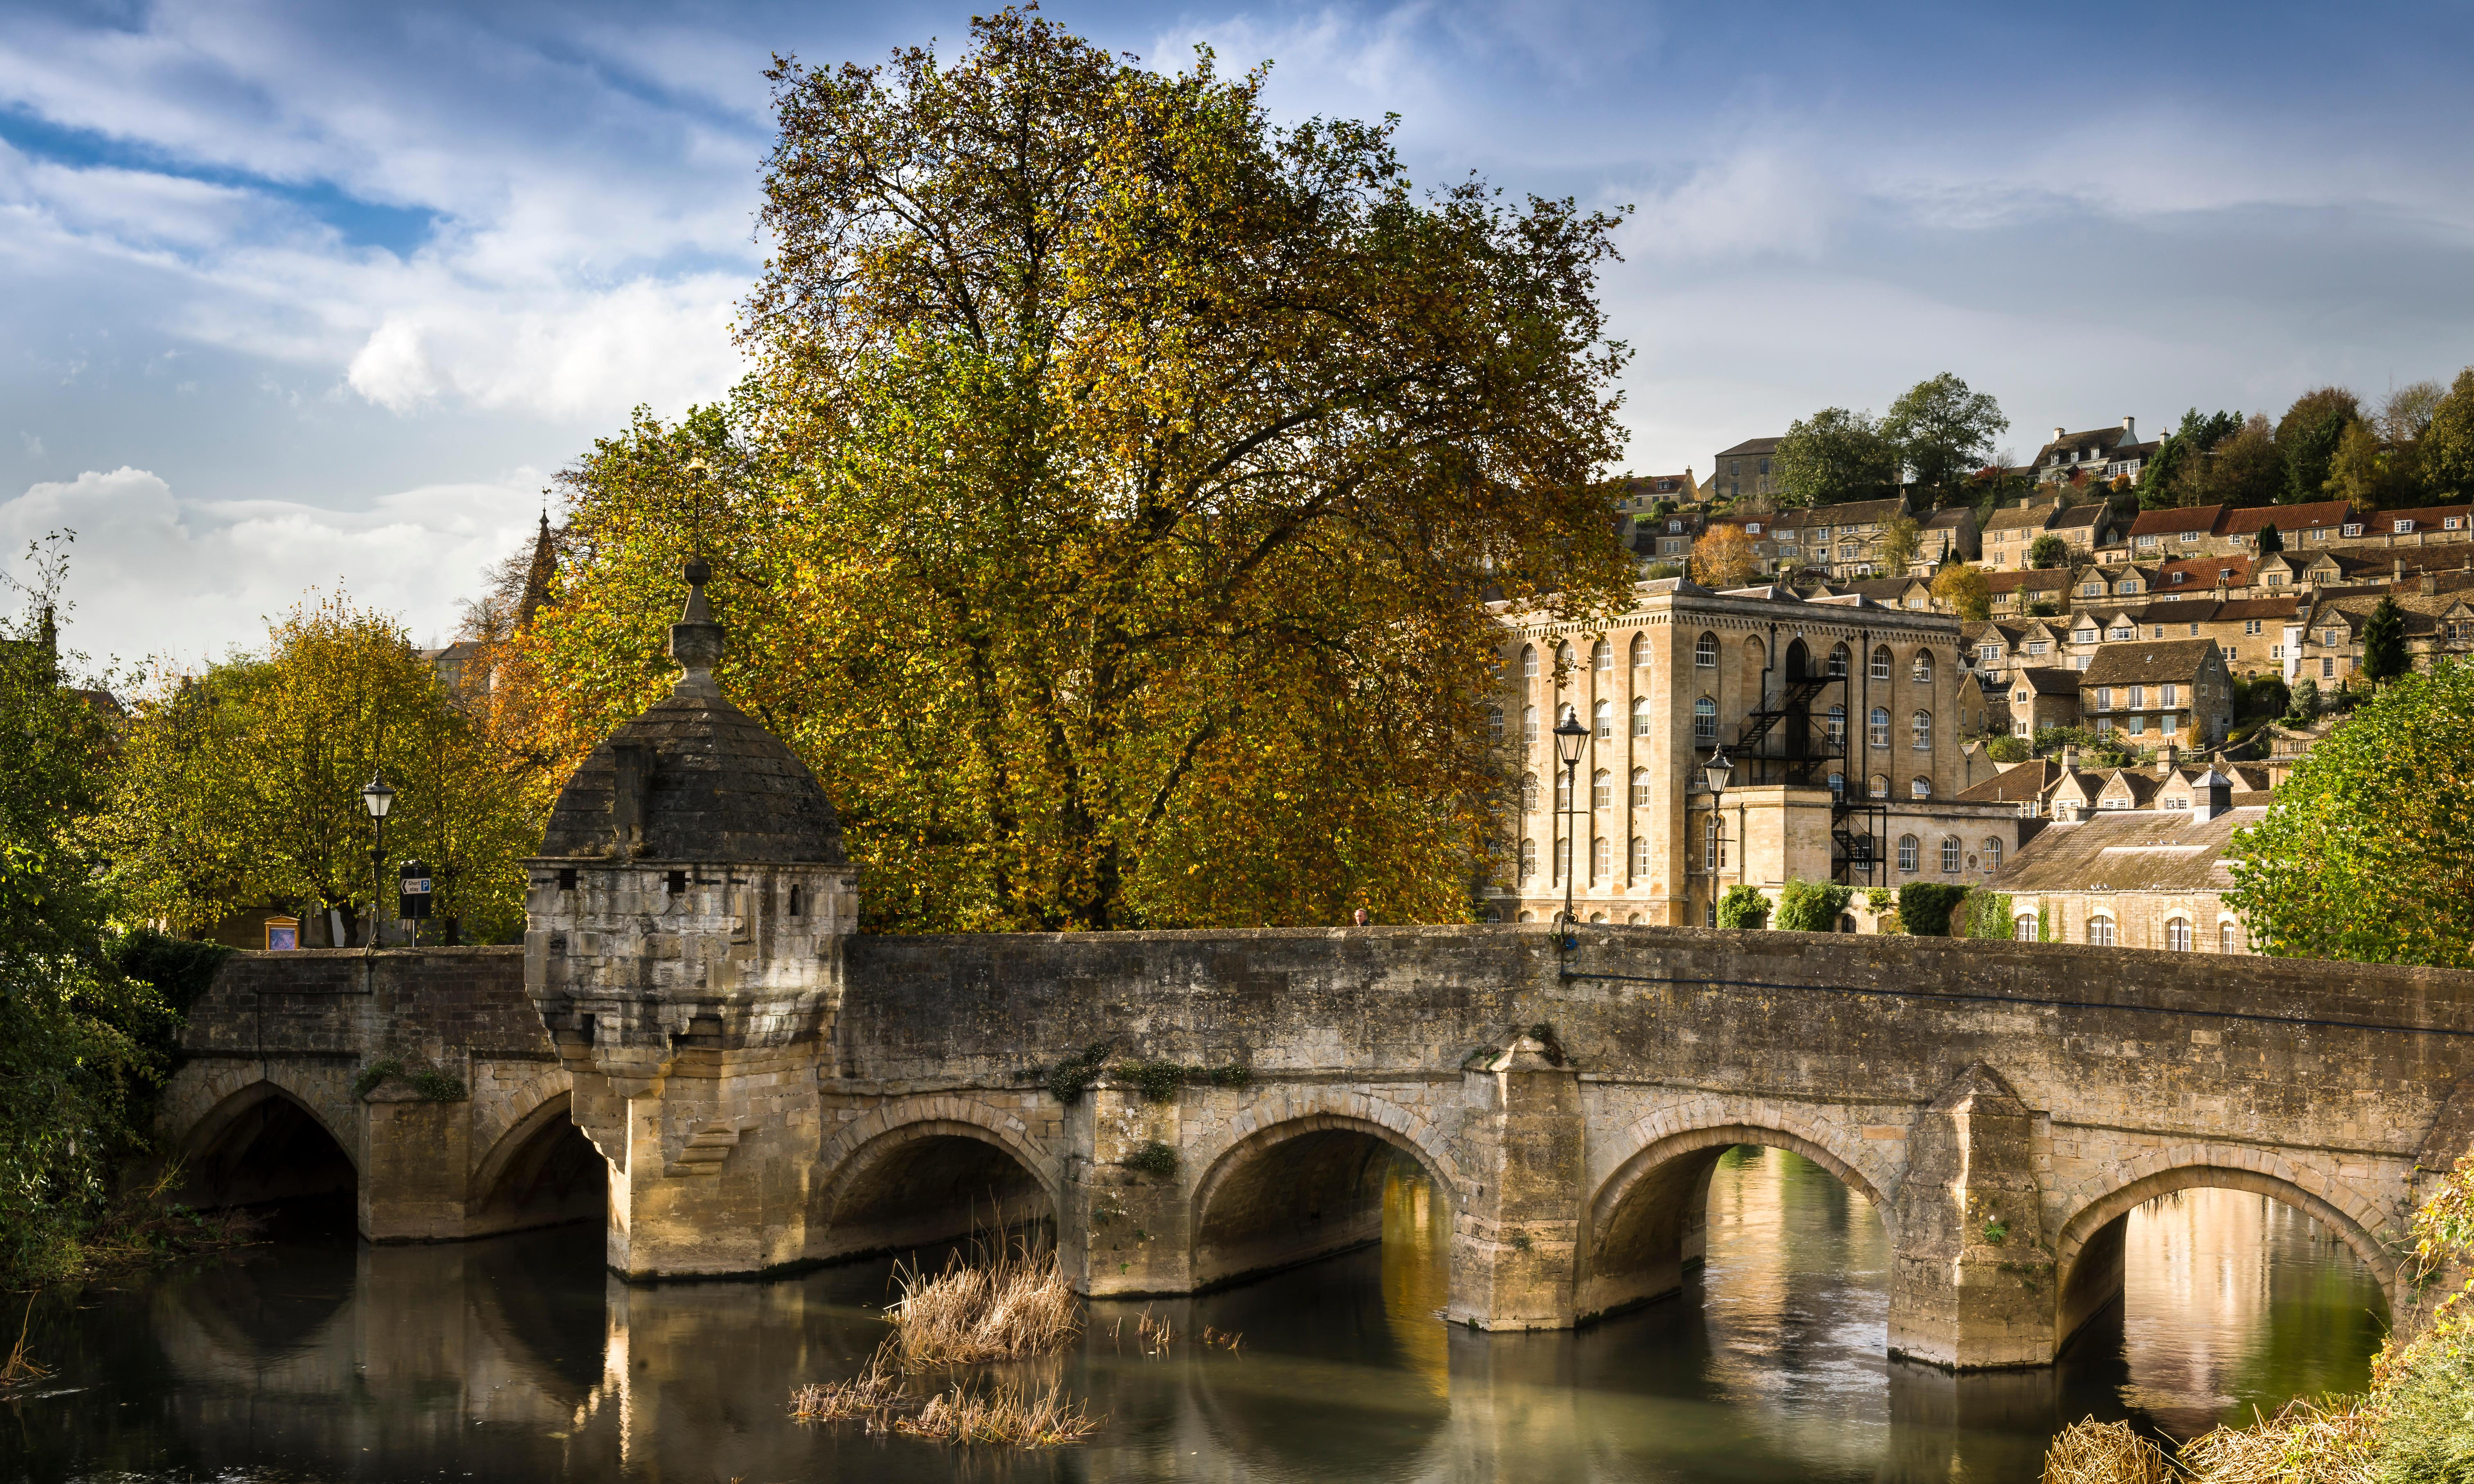 Send us a tip on autumn breaks in the UK for a chance to win a £200 hotel voucher